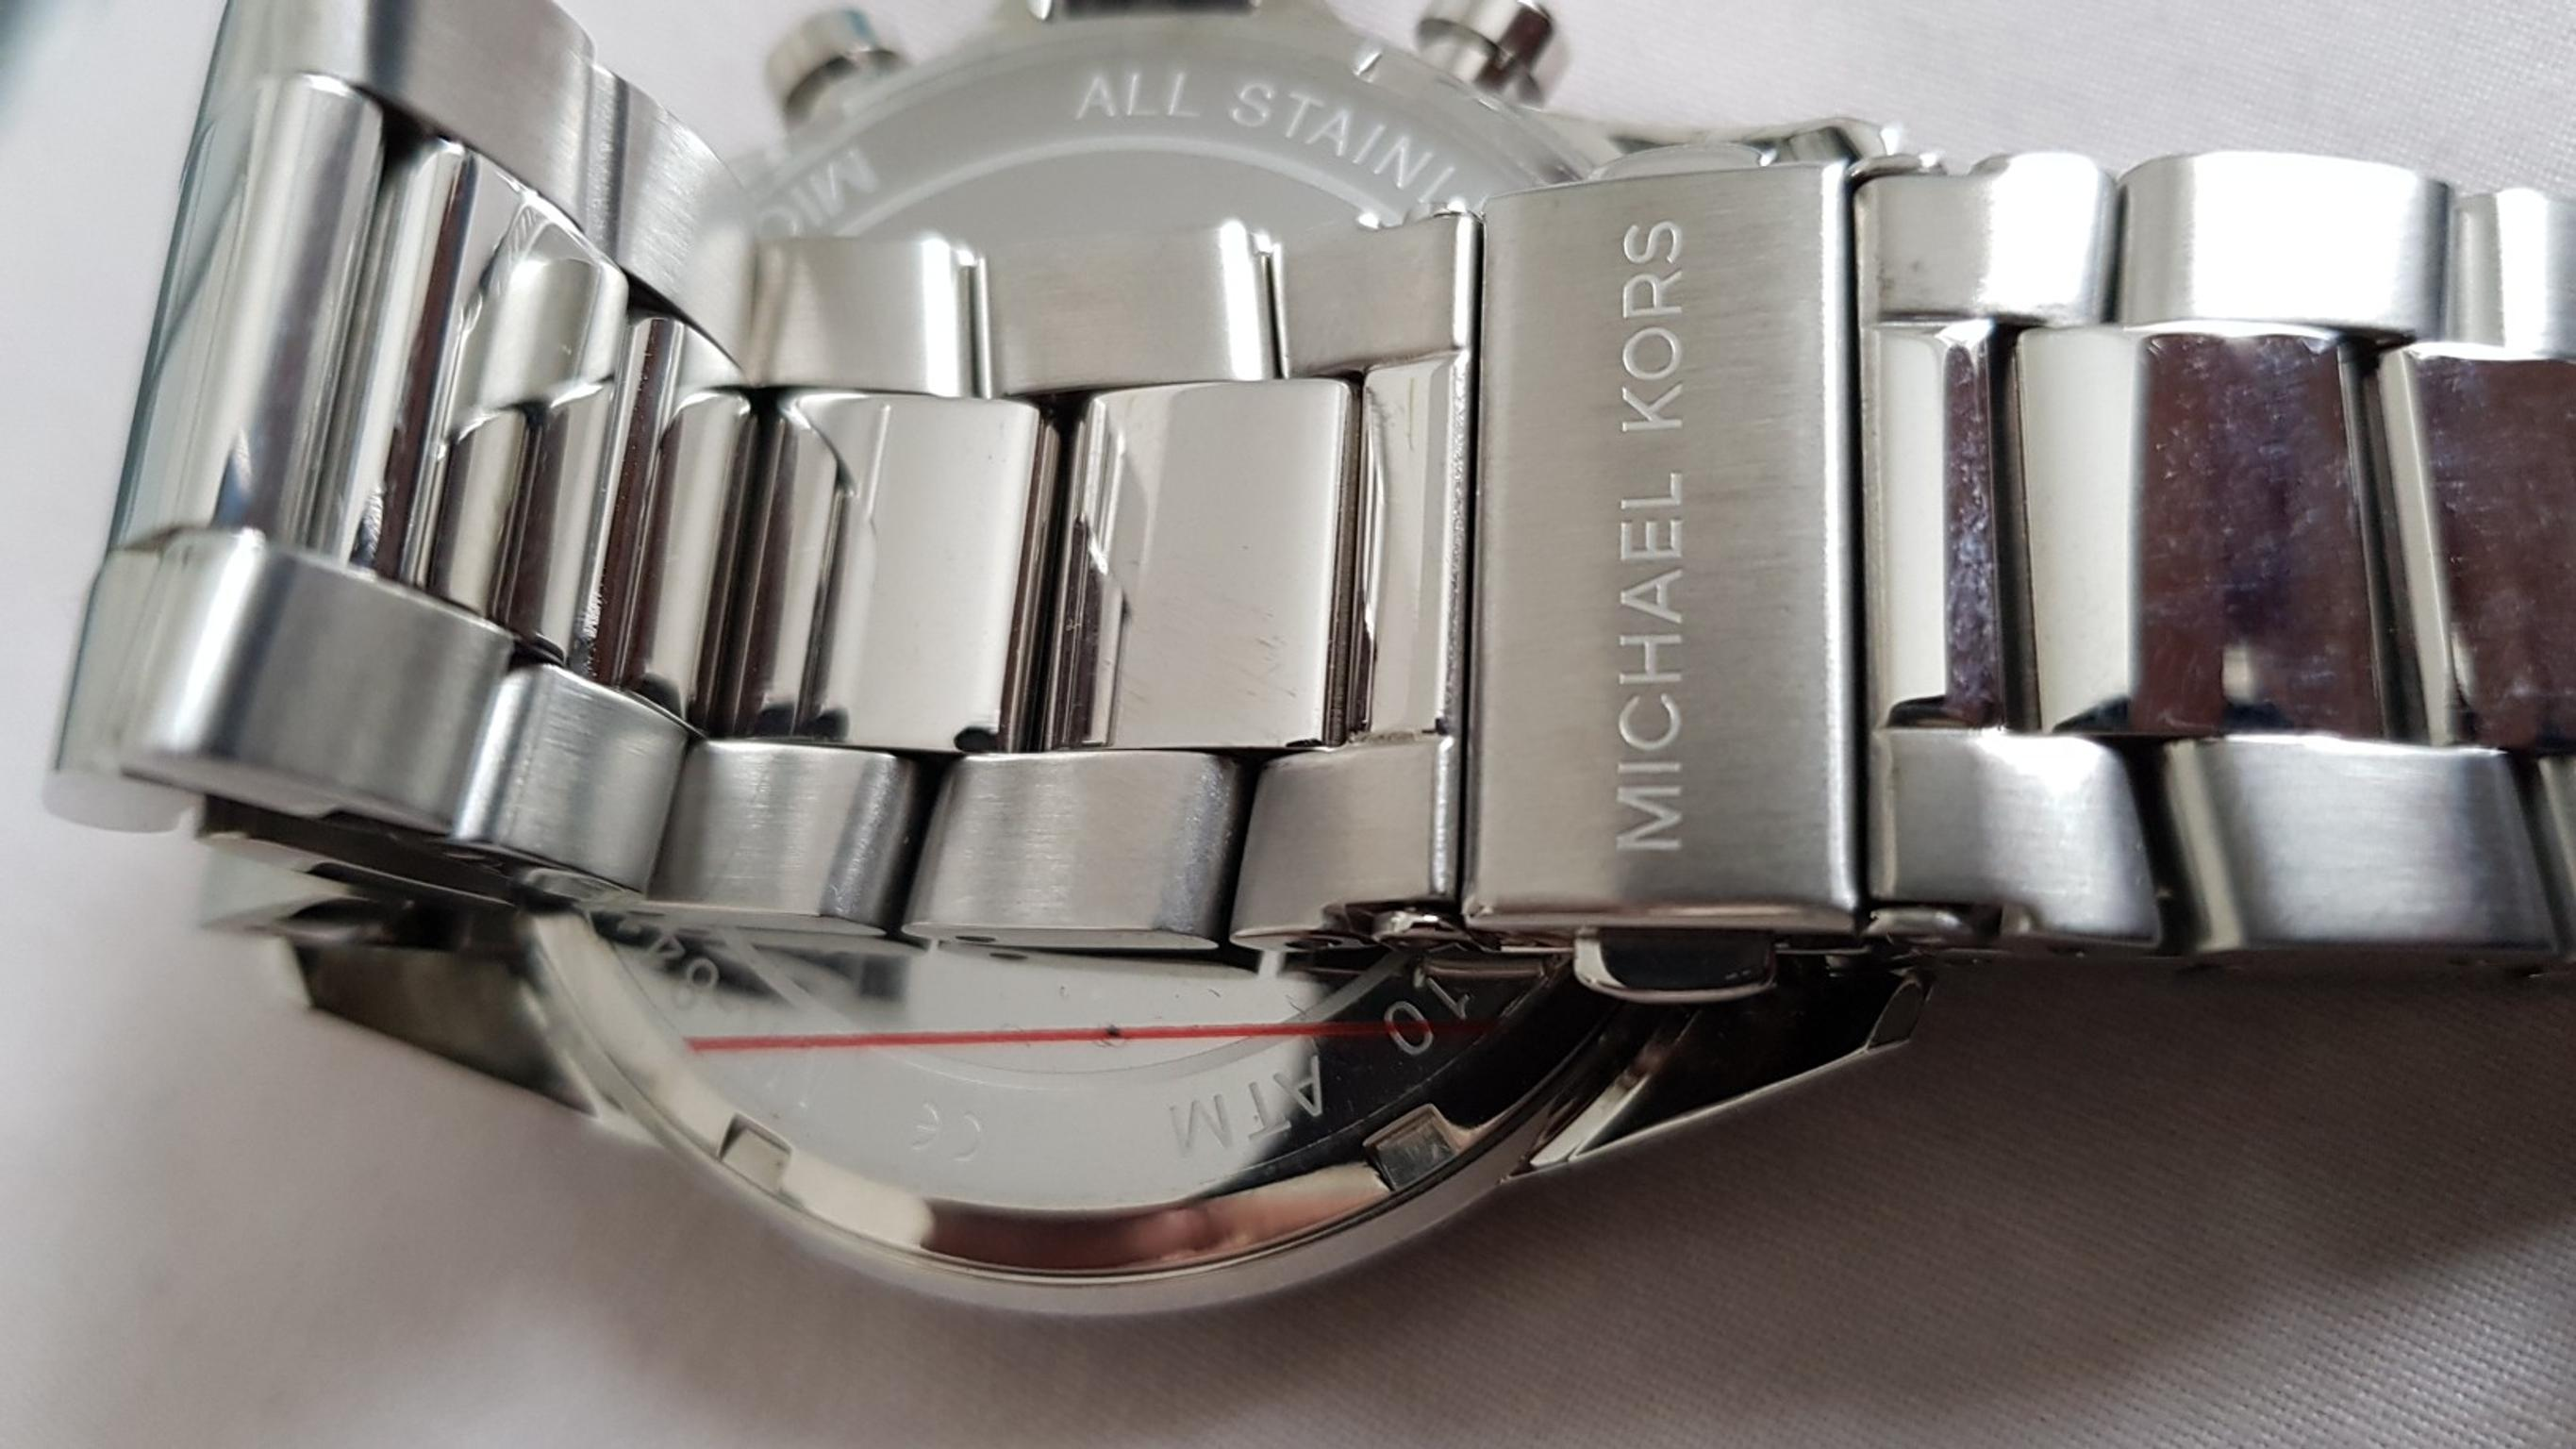 e2674a51f261 New Mens Michael Kors Watch in WV2 Wolverhampton for £120.00 for sale -  Shpock